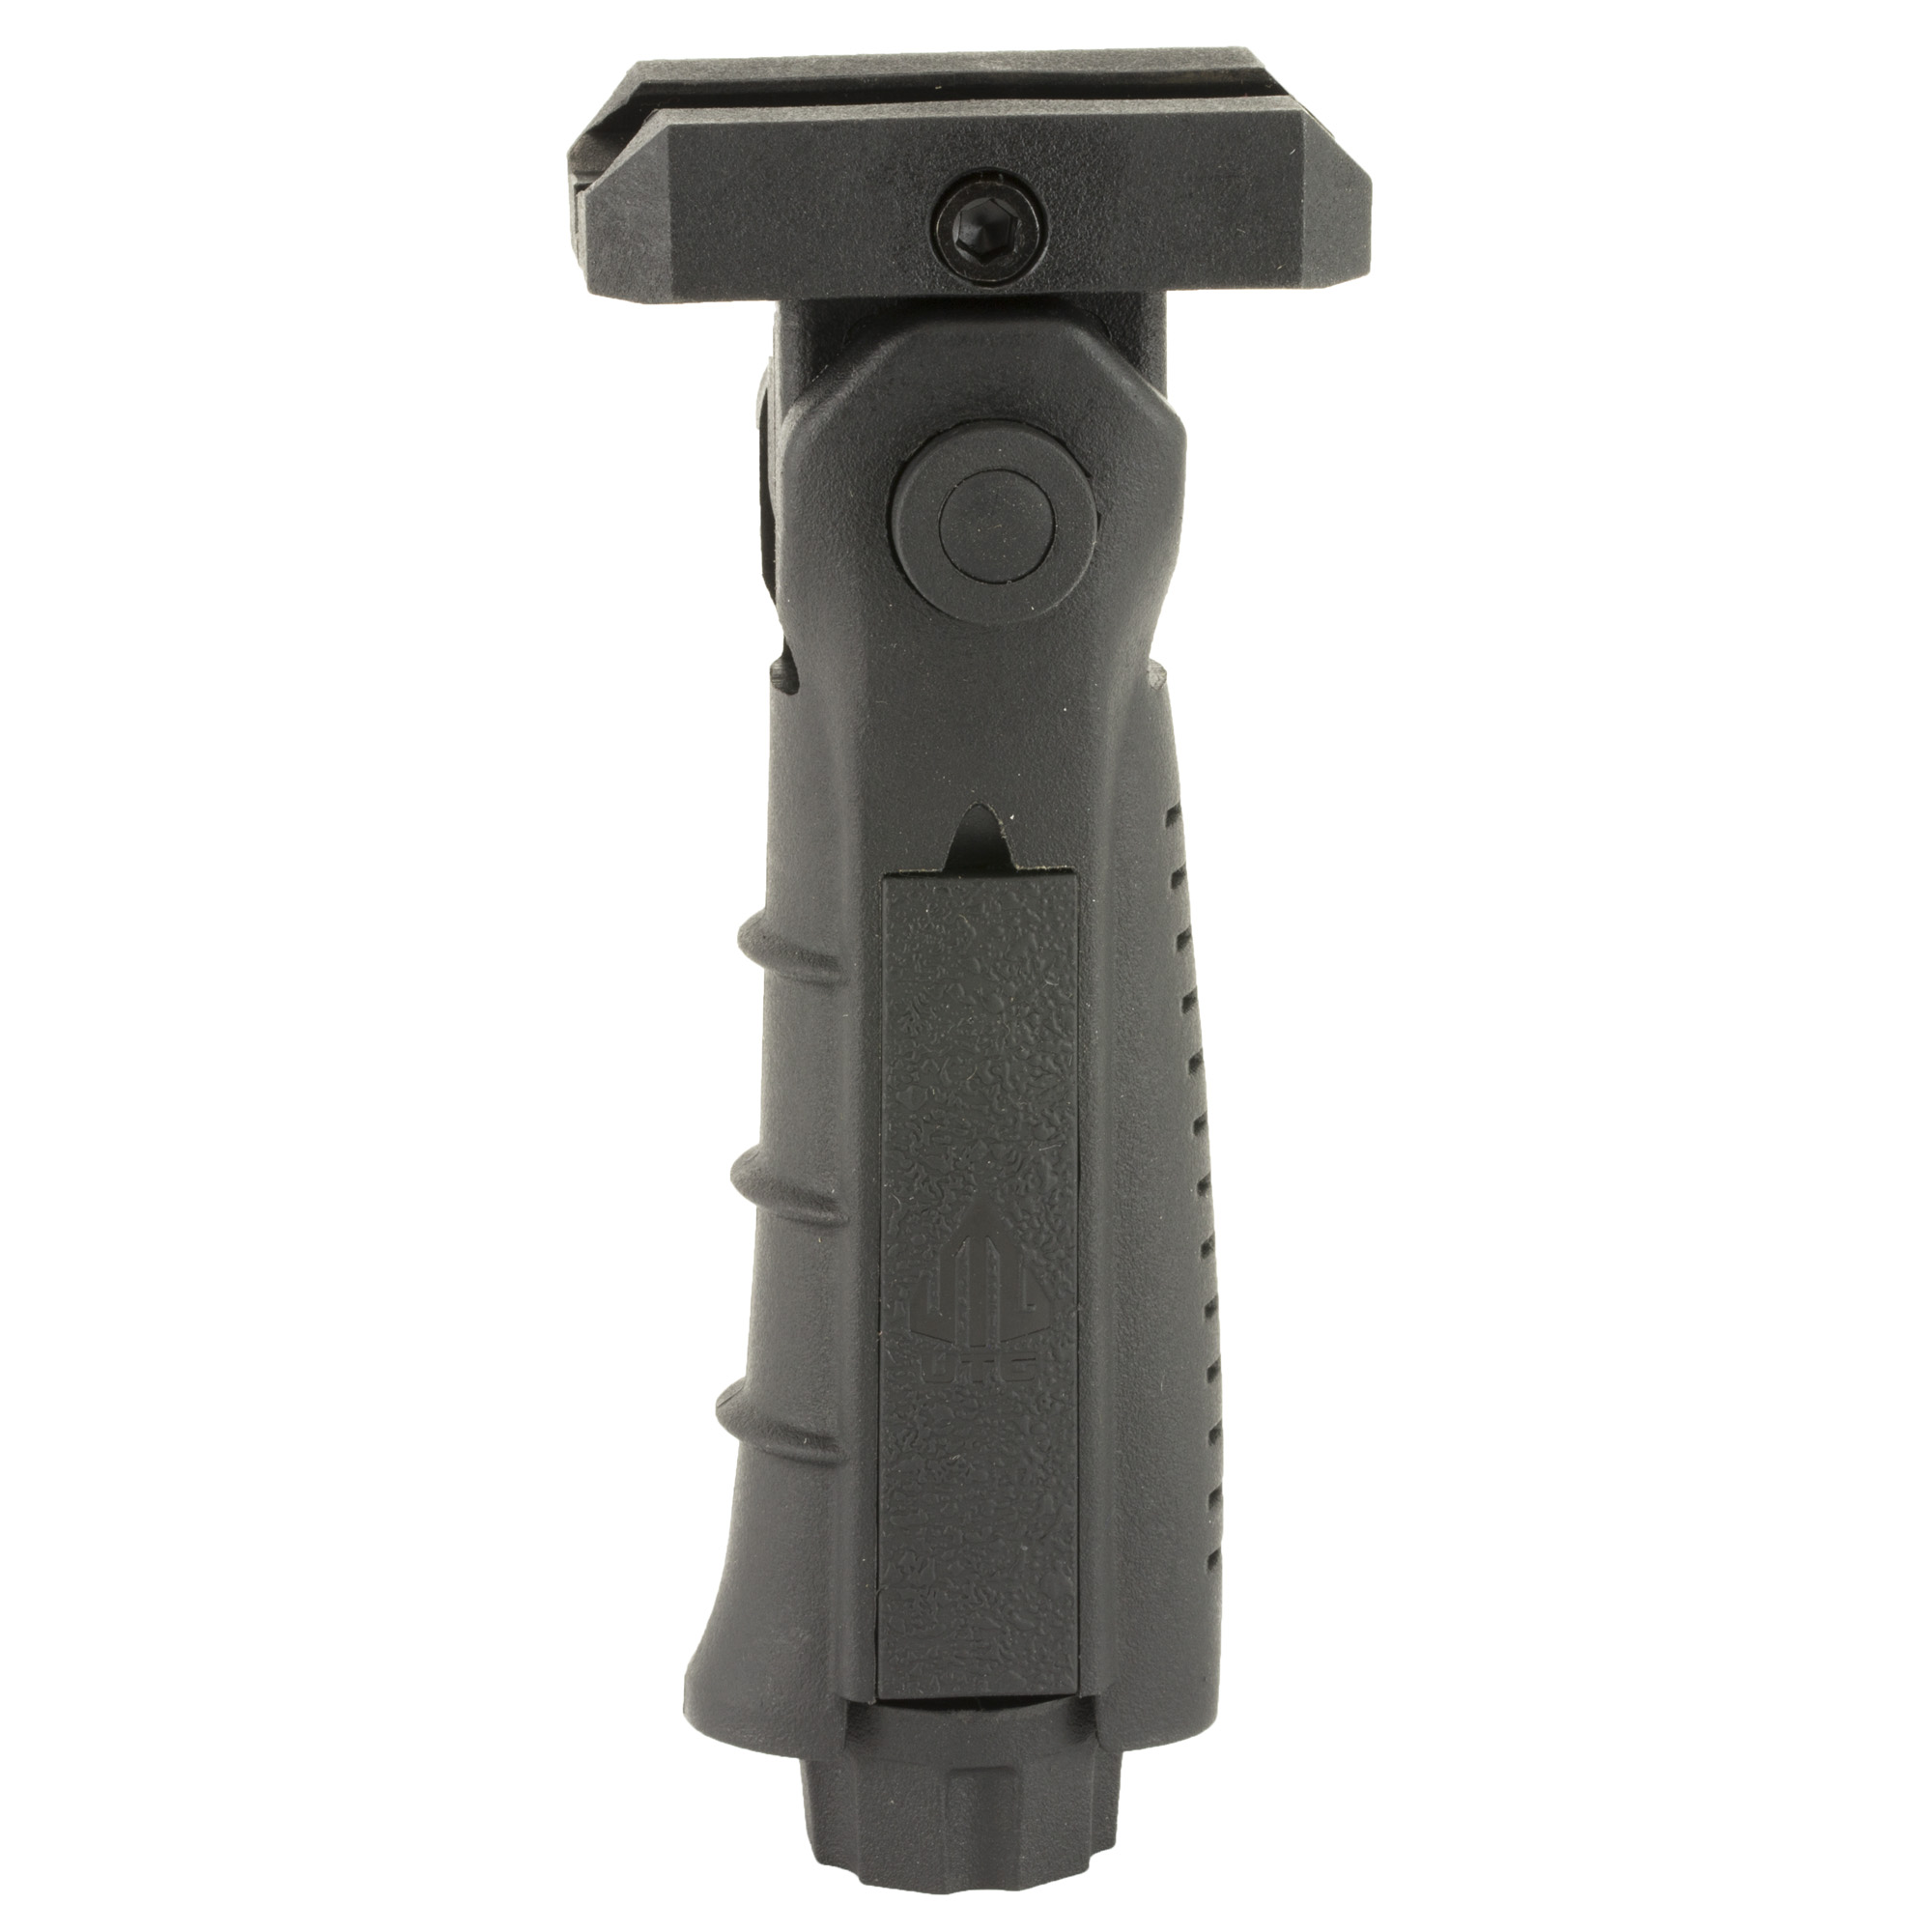 This UTG Model 4 Vertical Foregrip fits picatinny. It is a 5-position foldable foregrip with ergonomic finger grooves for a most comfortable grip. The practical side slide allows for ambidextrous use of the pressure pad insert and the clever end cap conceals the battery storage and controls grip mounting. It's picatinny mounting deck allows the foregrip to slide on and screw on tight.